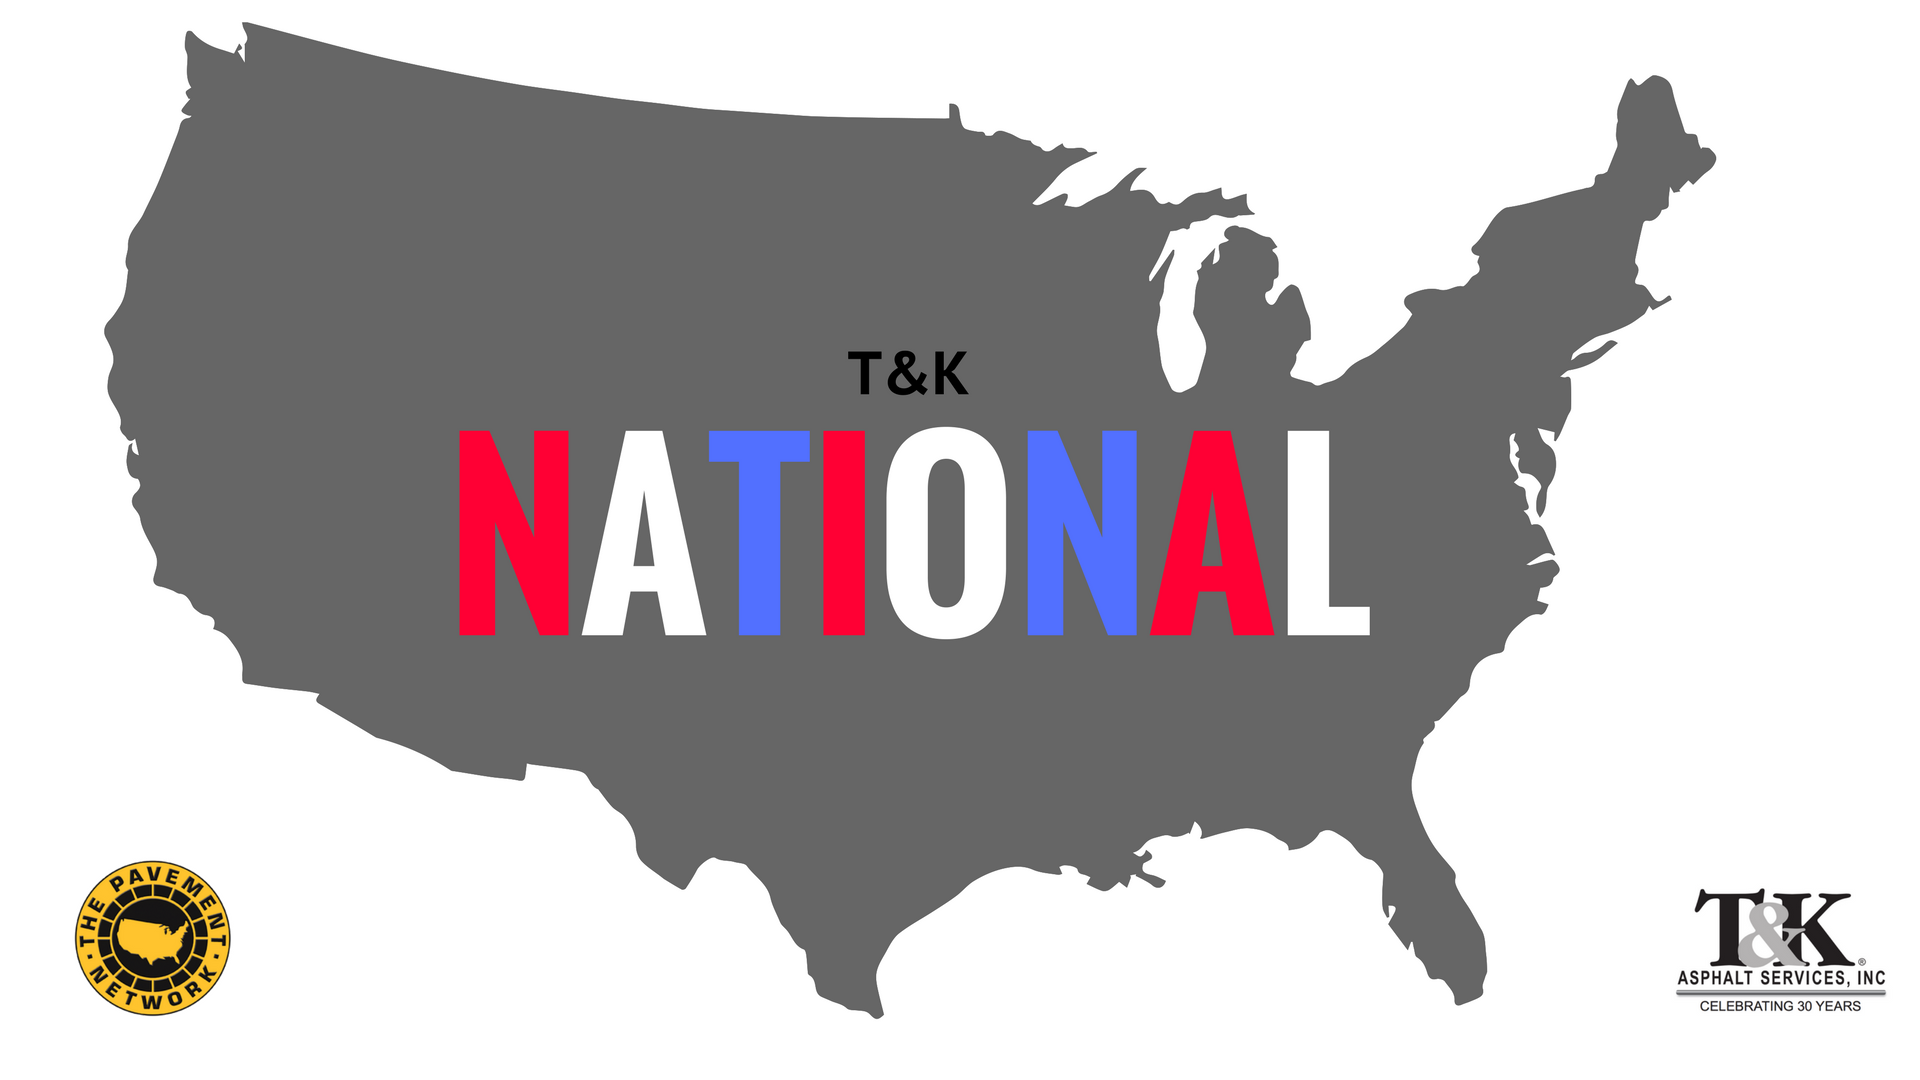 T&K National